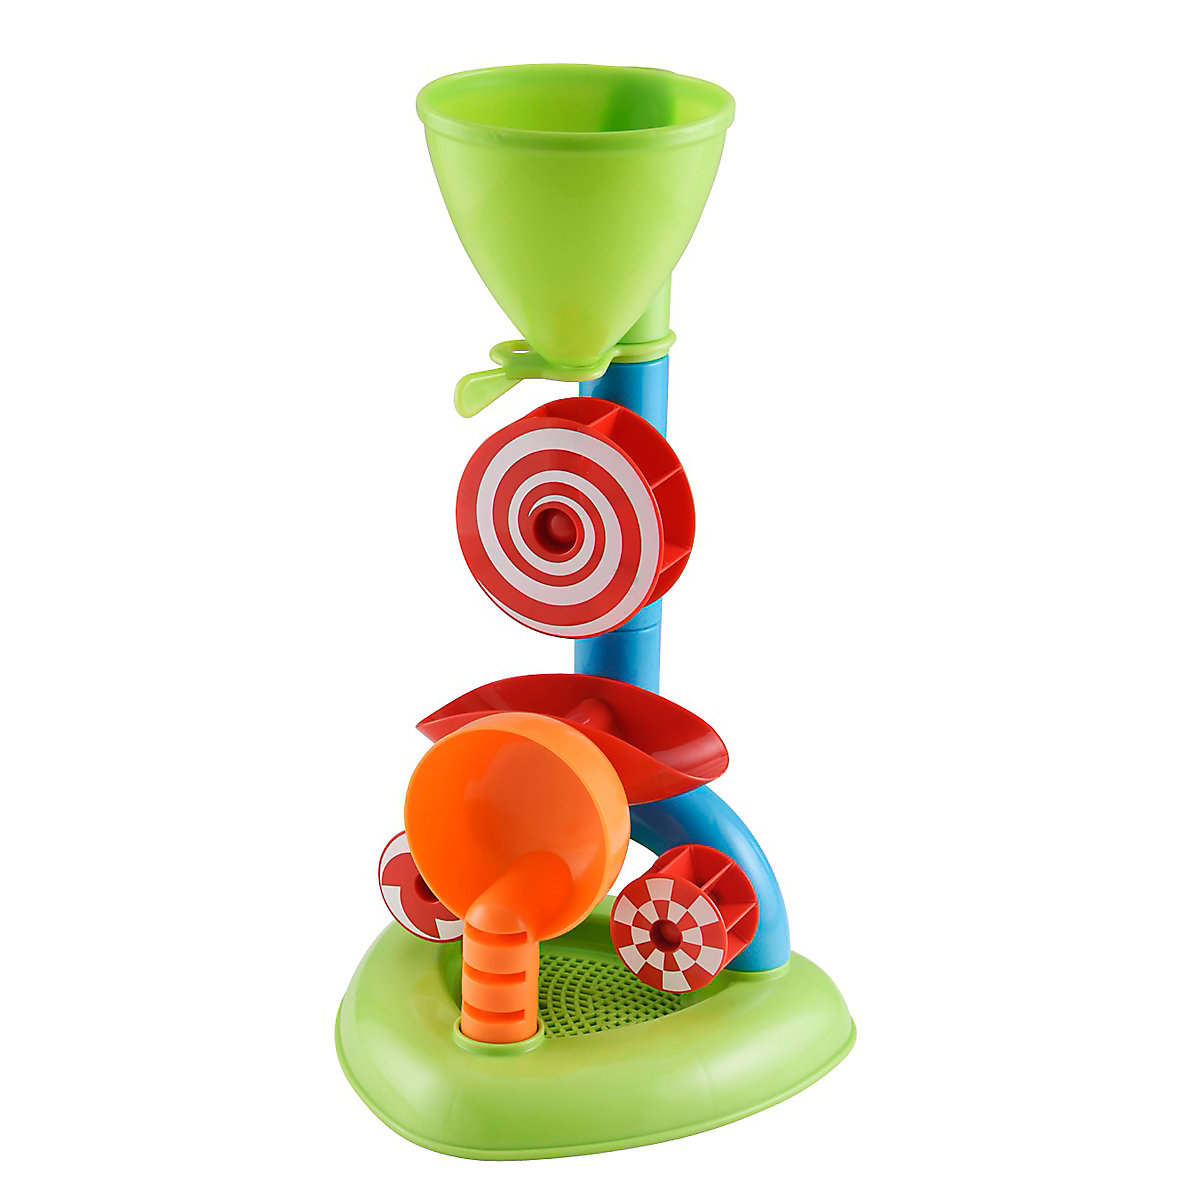 New ELC Boys and Girls Sand and Water Wheel Toy From 12 months - Early Learning Centre Gifts